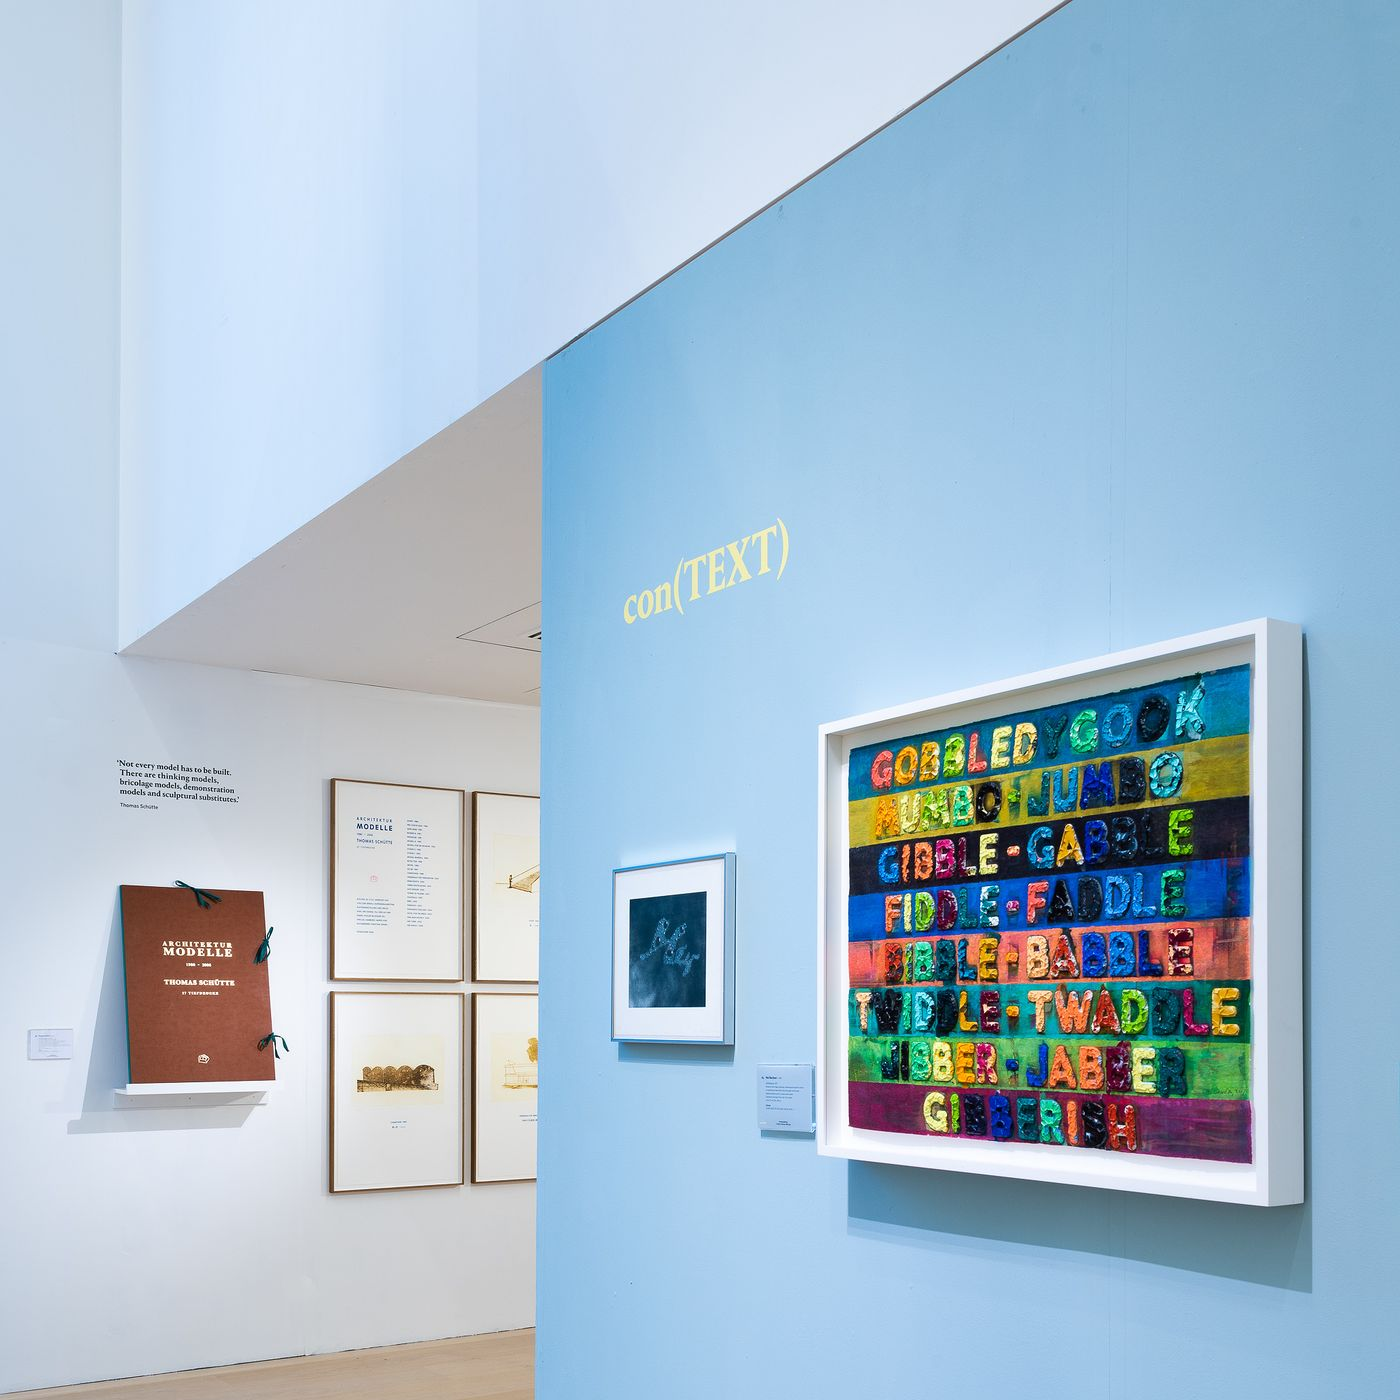 Through a group of editions by Mel Bochner, Jenny Holzer and other prominent artists, we explore the shifting role of written language in creating and extracting a work's meaning.